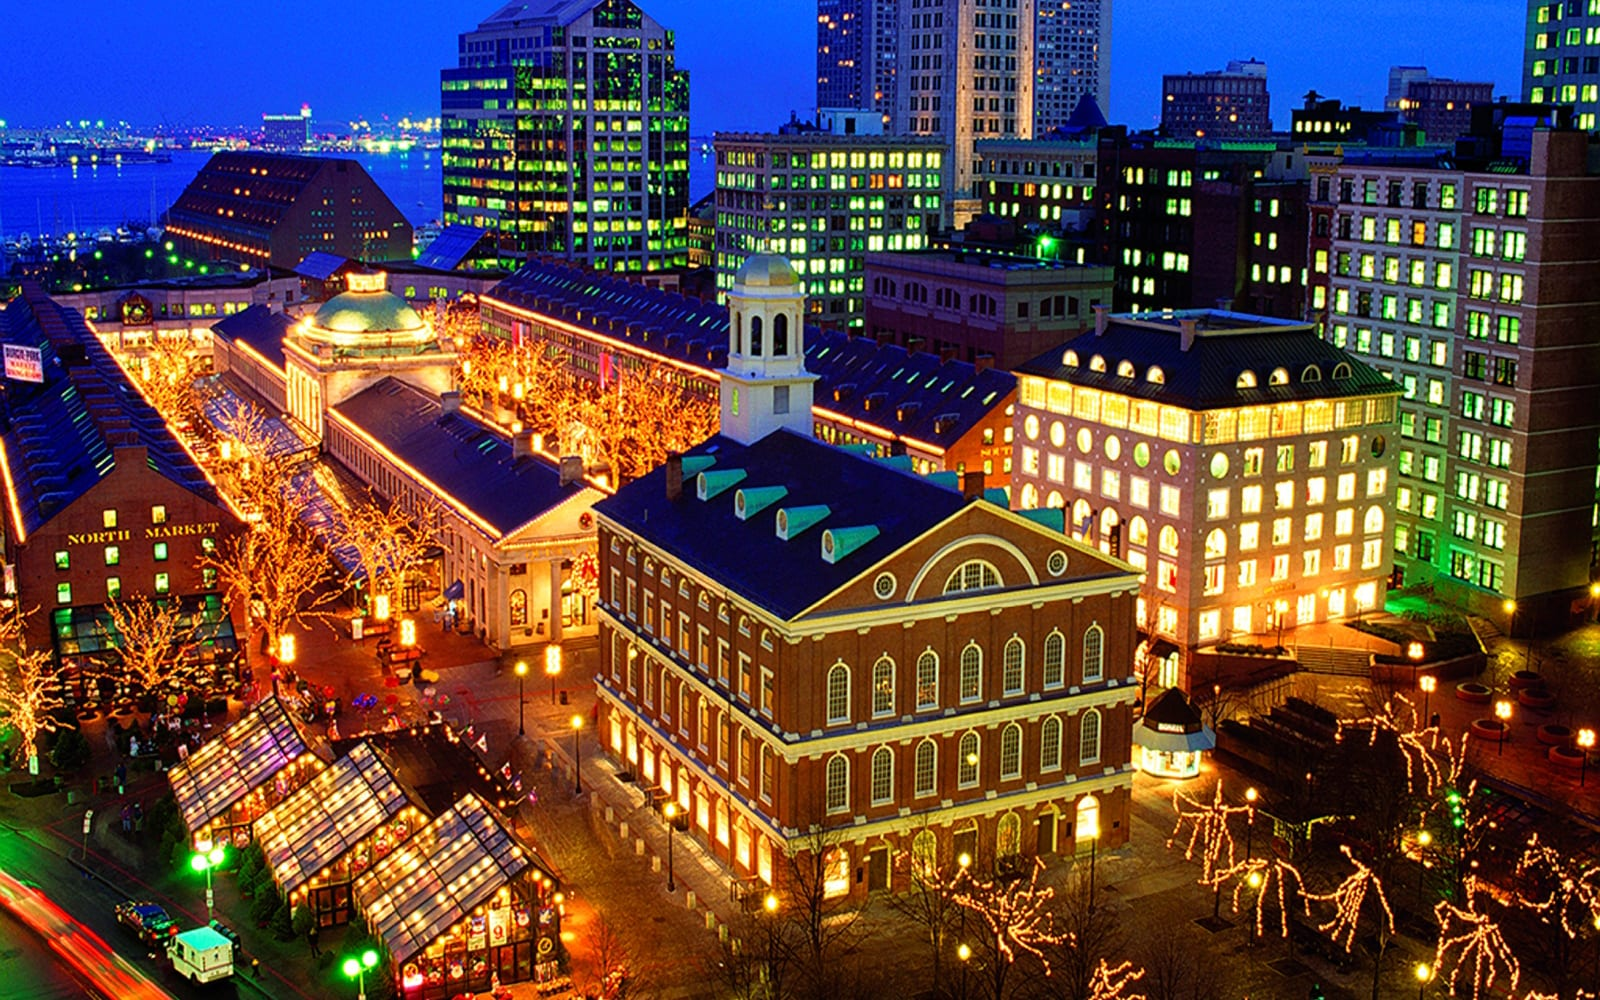 Night time of Faneuil Hall in Downtown Boston.